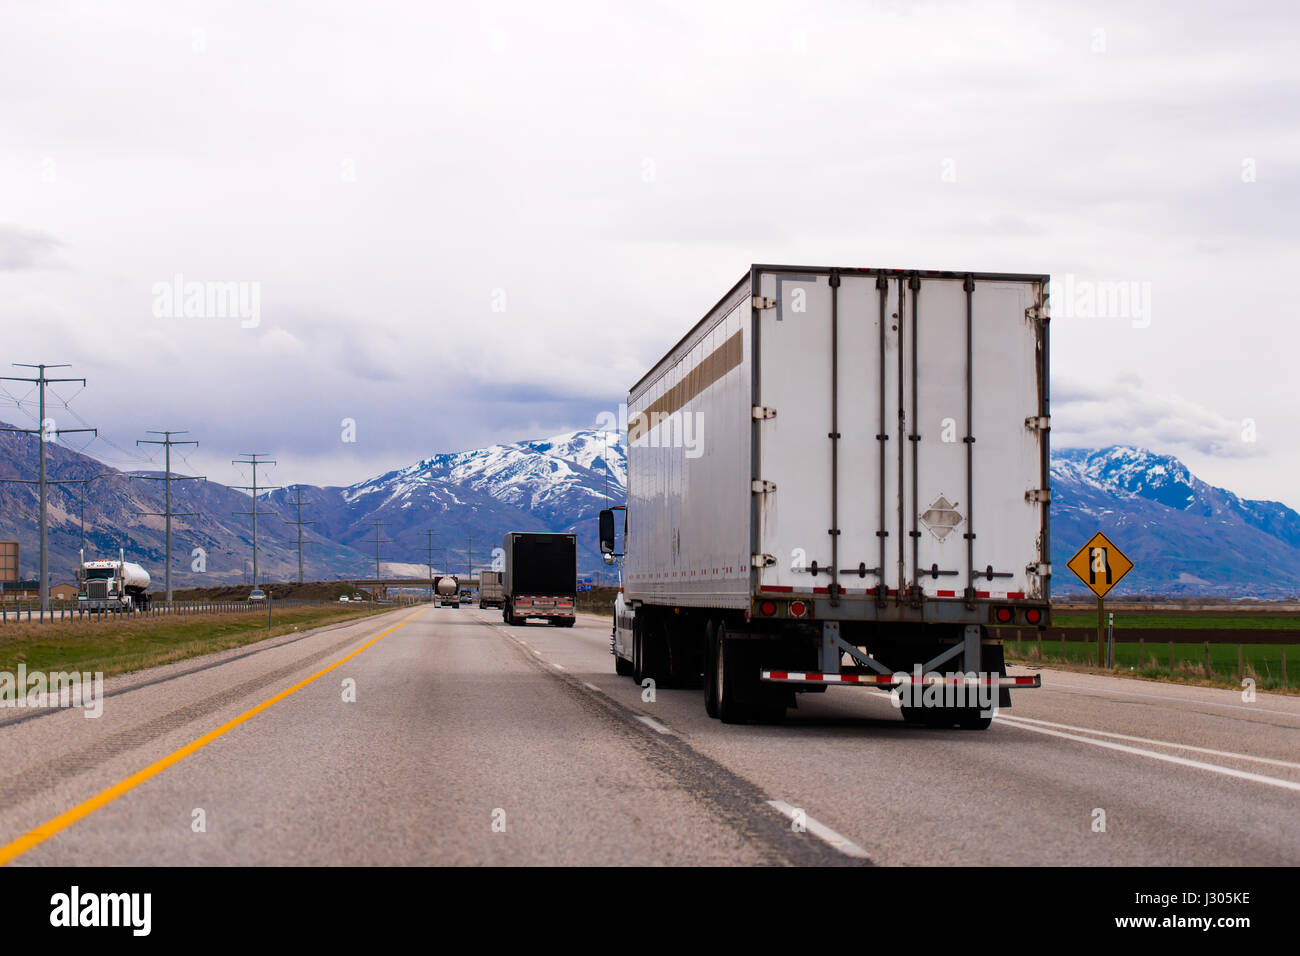 Picturesque straight multilane highway with a dividing strip oncoming traffic flows with a semi trucks and trailers - Stock Image